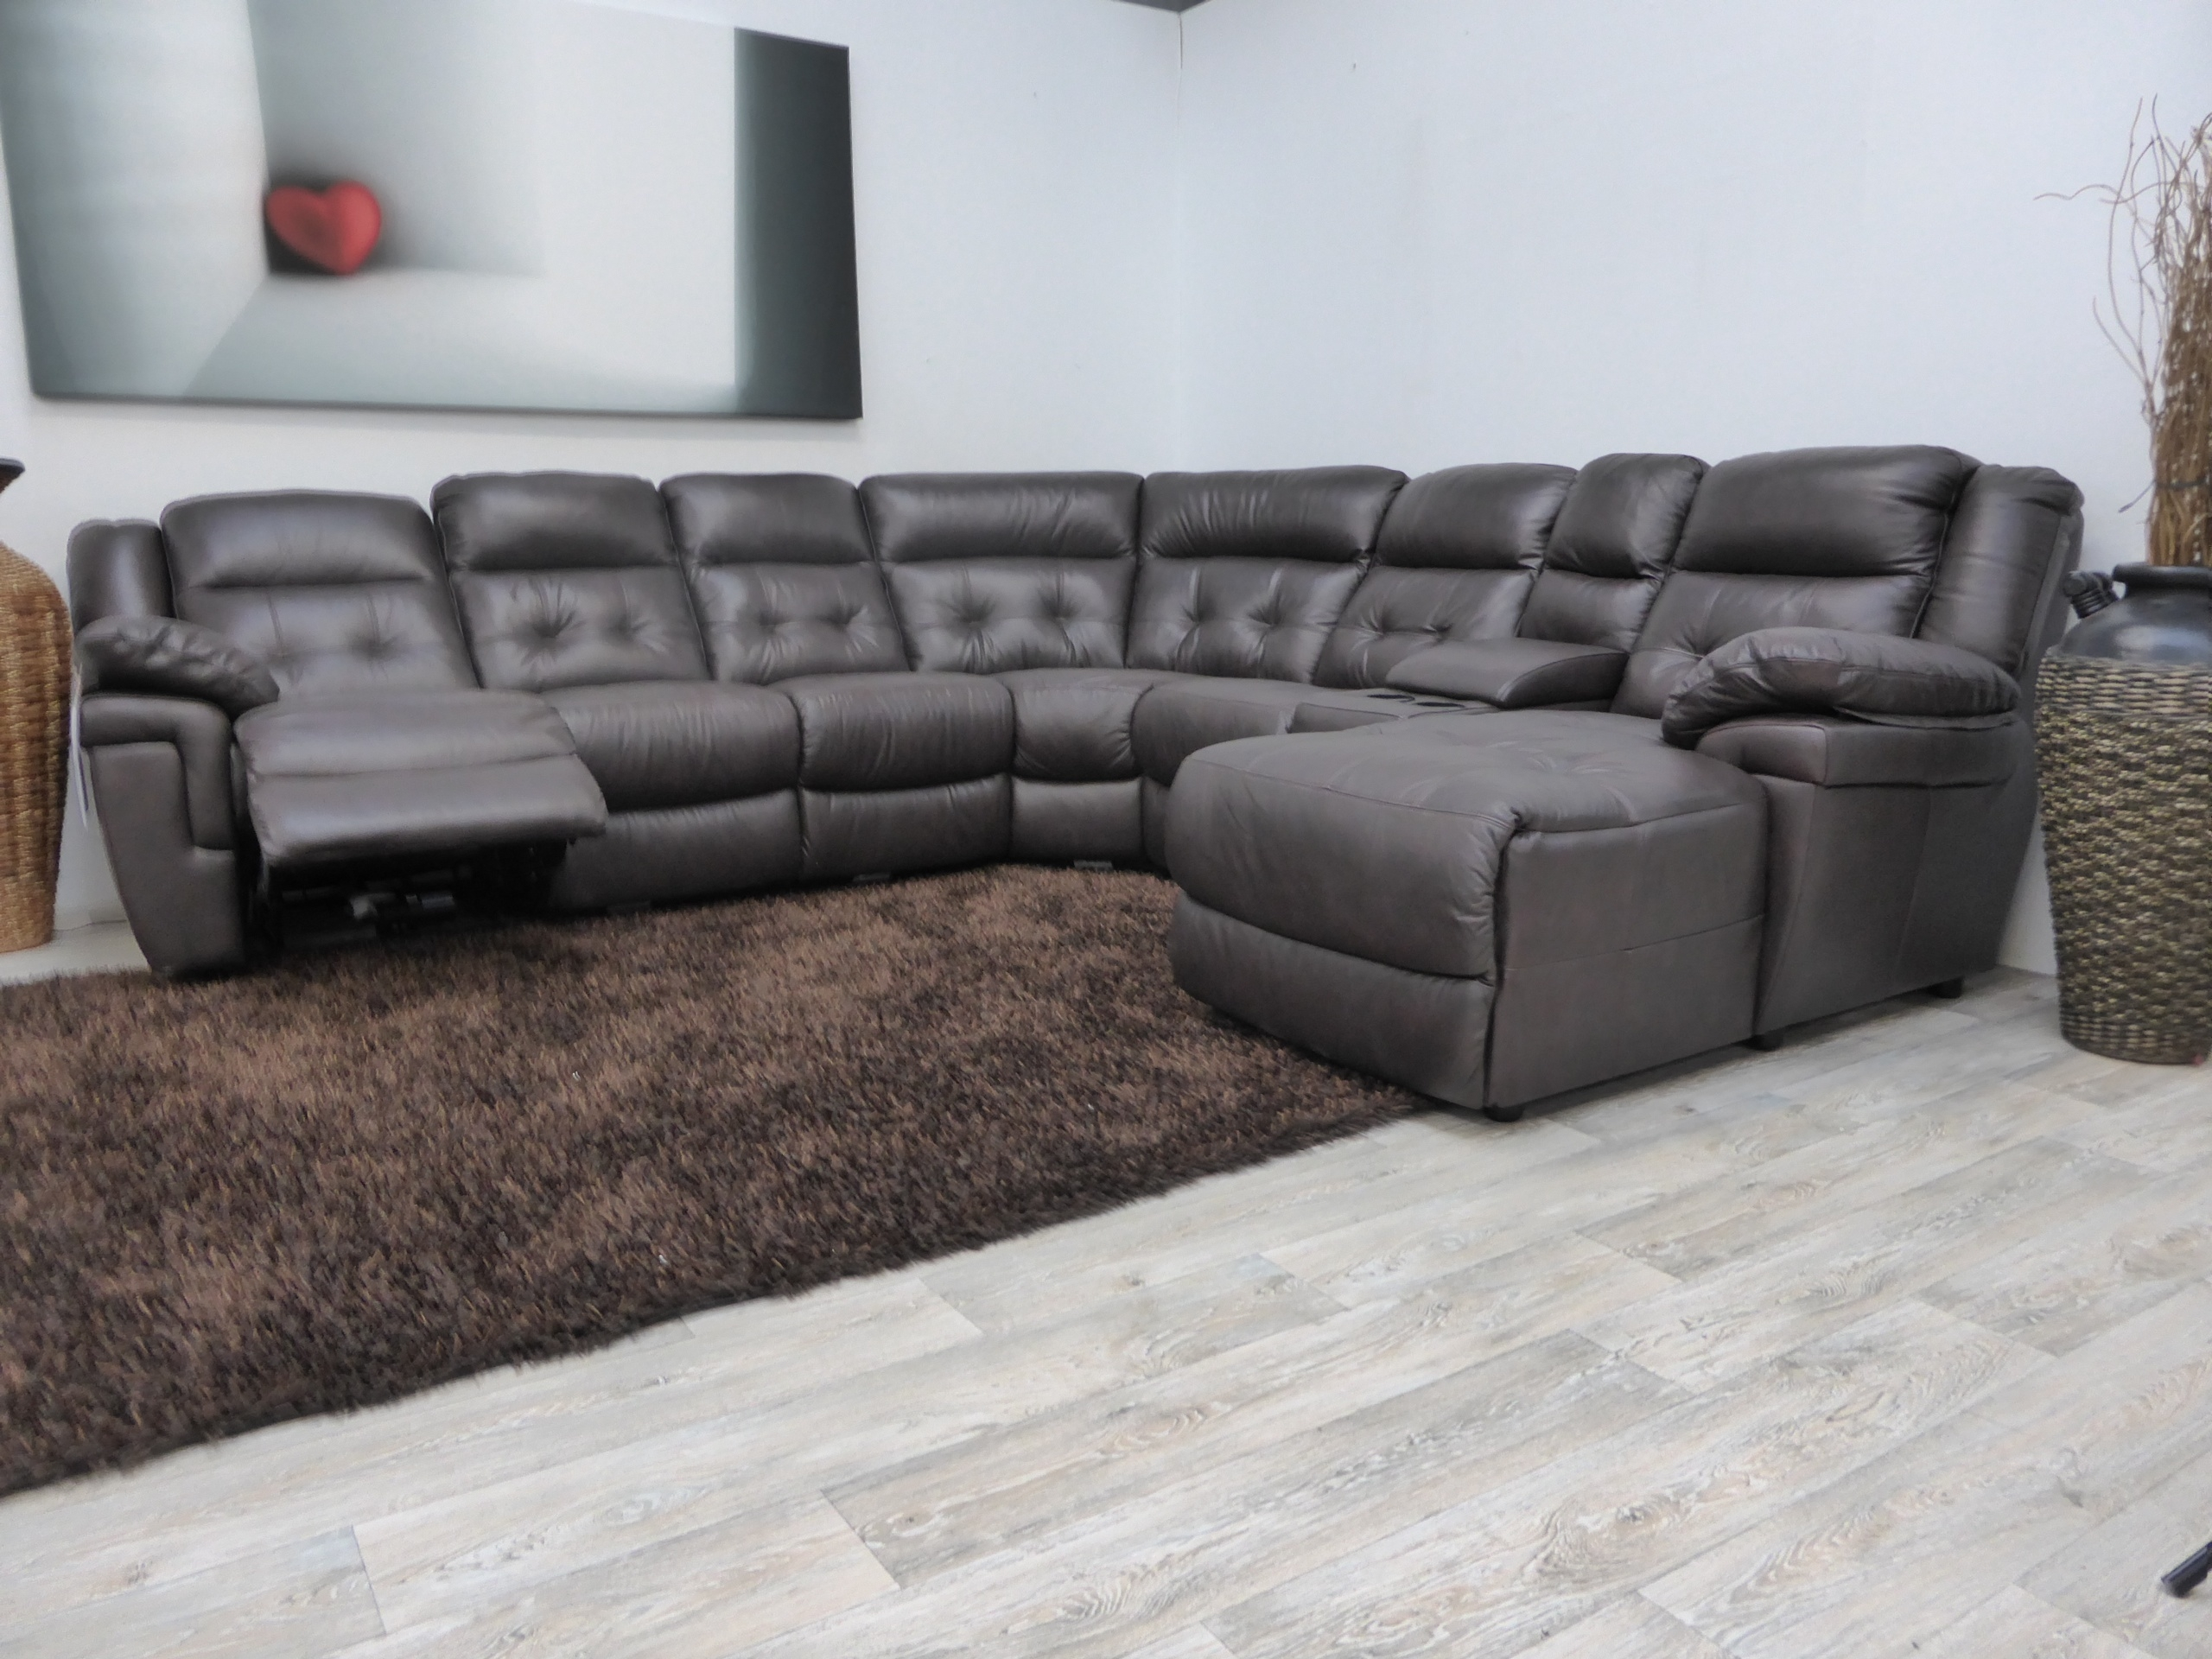 Living Room Best Of Trends Red Microfiber Sectional Sofa For In Durable Sectional Sofa (View 14 of 15)